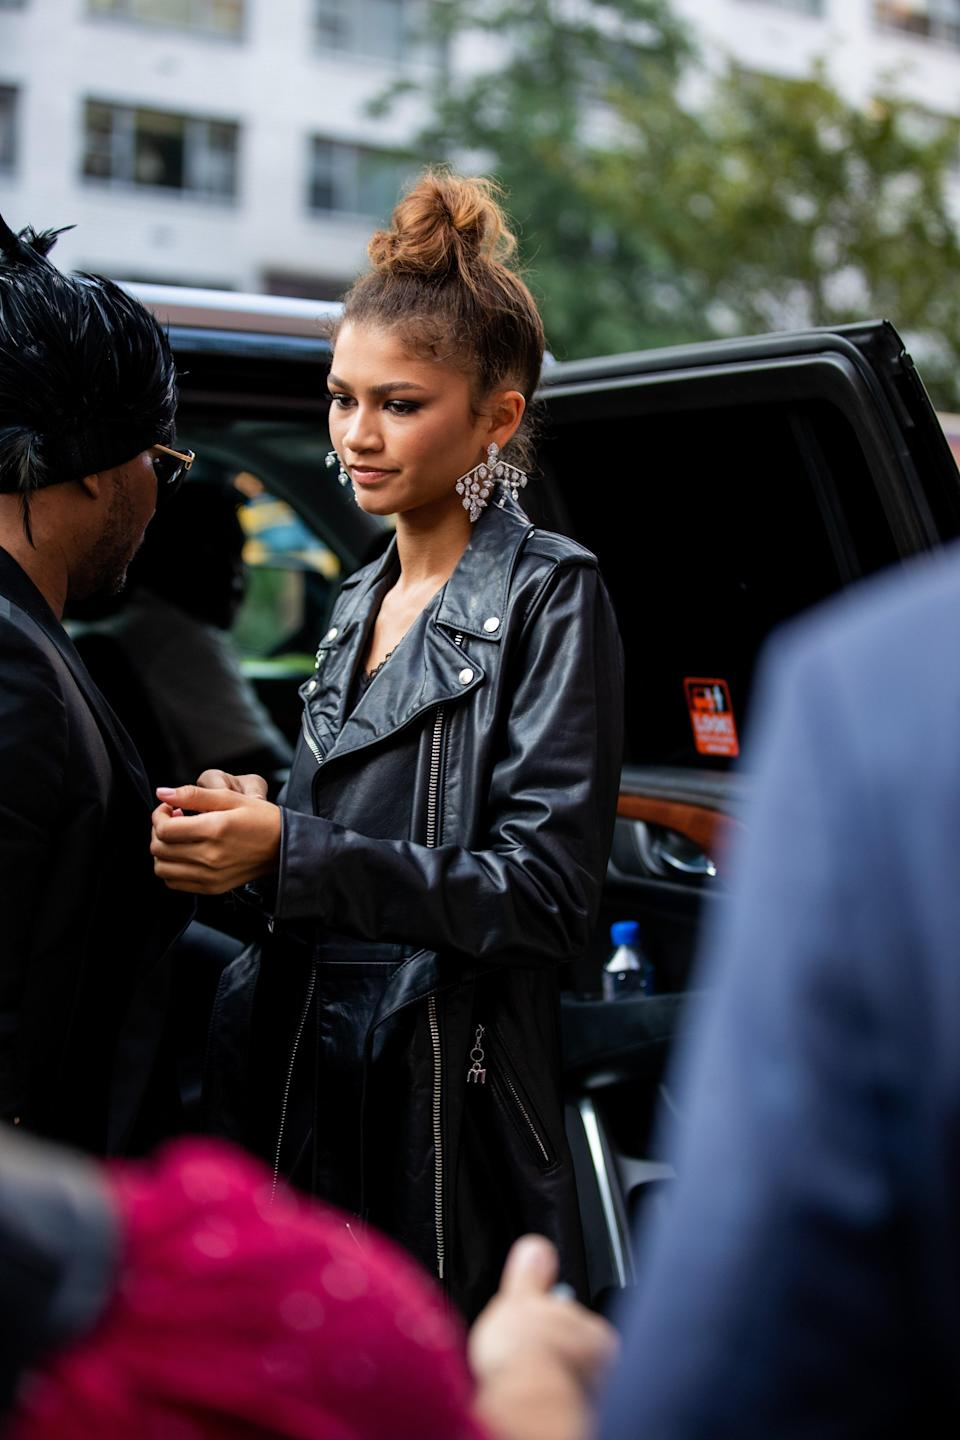 """""""I love a curly, messy bun with curly wispy pieces left out,"""" says LaFond. """"It's such a pretty style that requires minimal skill."""" Zendaya clearly agrees."""